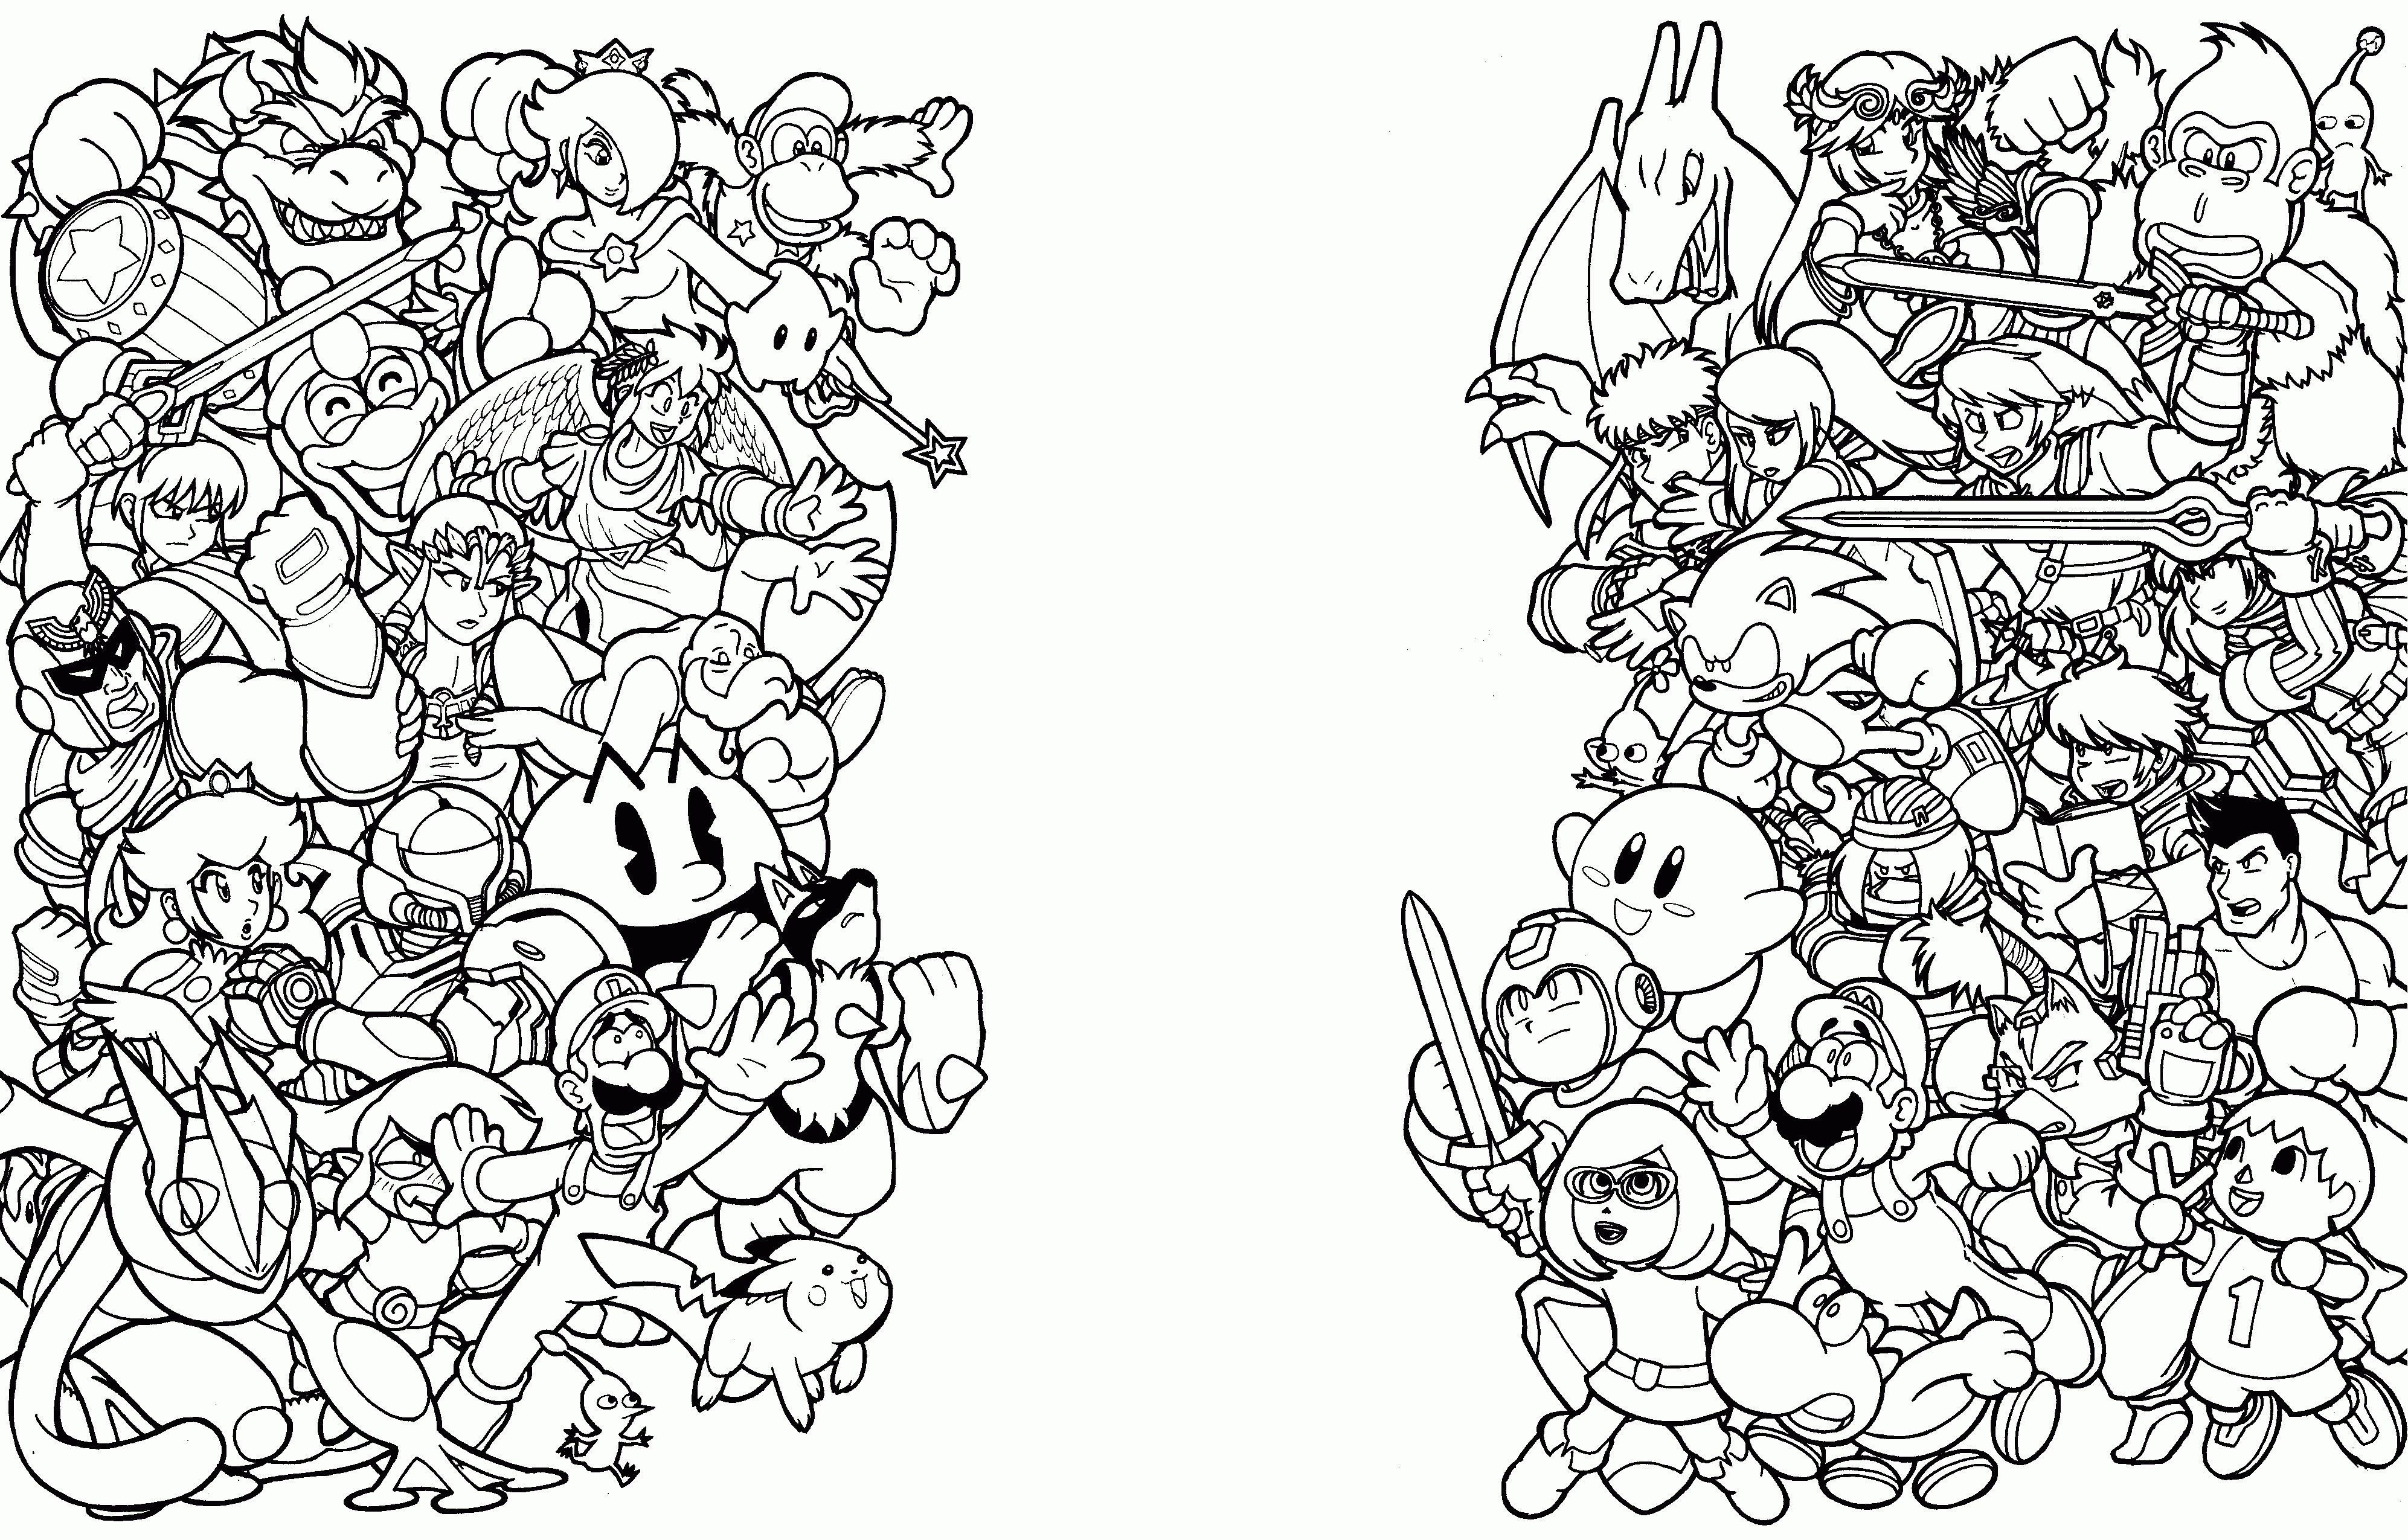 Super Smash Bros Coloring Pages Freecolorngpages Co With ...